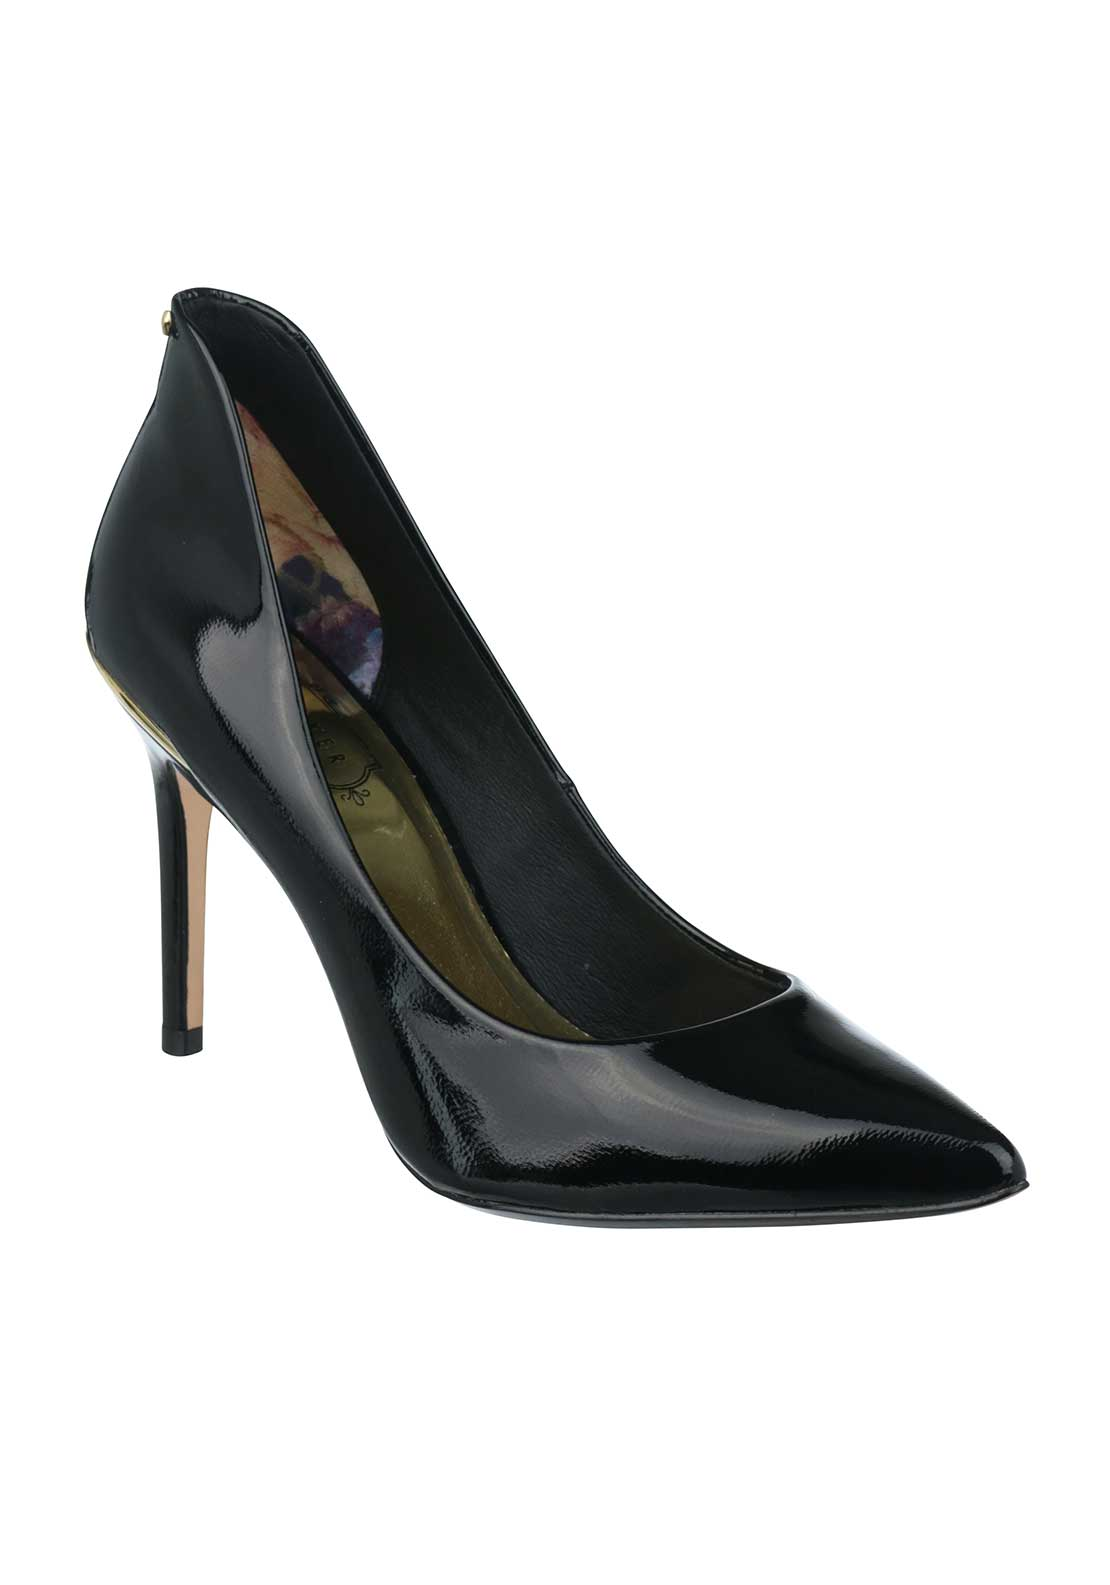 Ted Baker Womens Saviy Leather Heeled Shoes, Black